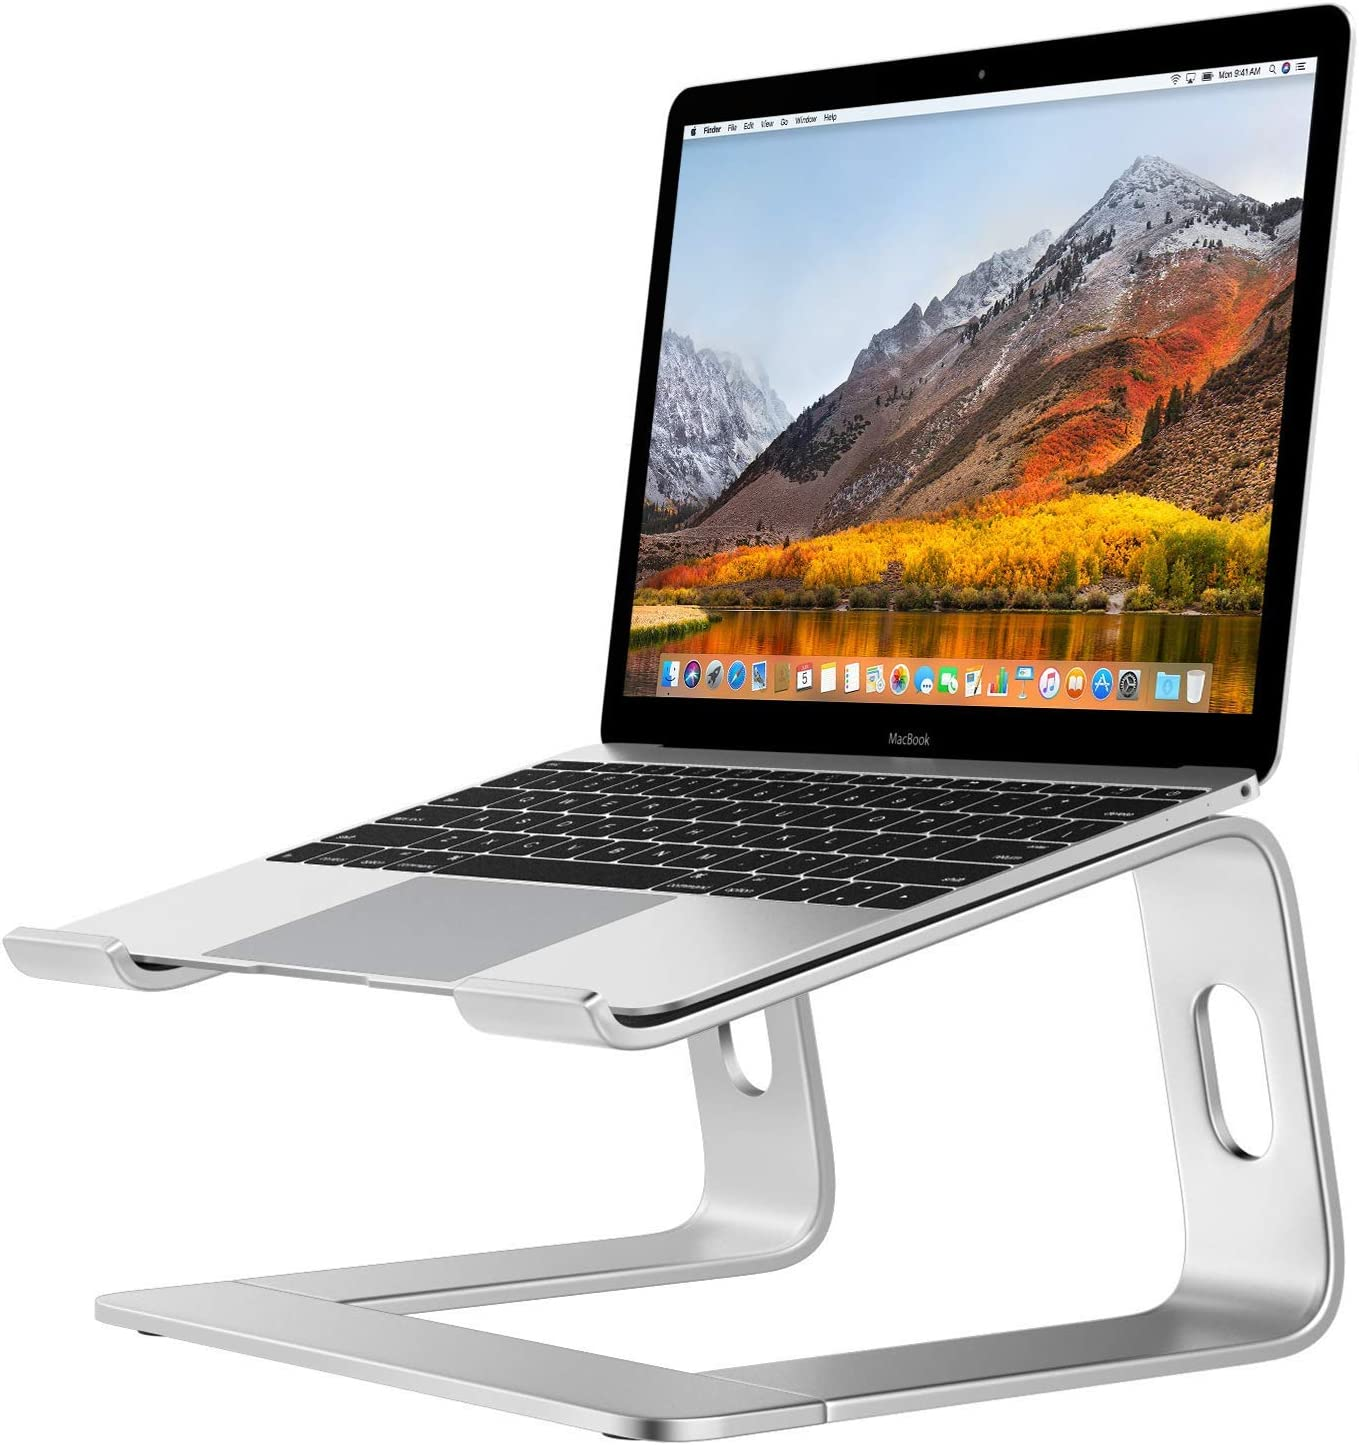 "Desire2 Laptop Stand, View Ergonomic Aluminum Laptop Computer Stand, Detachable Laptop Riser Notebook Holder Stand Compatible with MacBook Air Pro, Dell XPS, HP, Lenovo More 10-15.6"" Laptops"